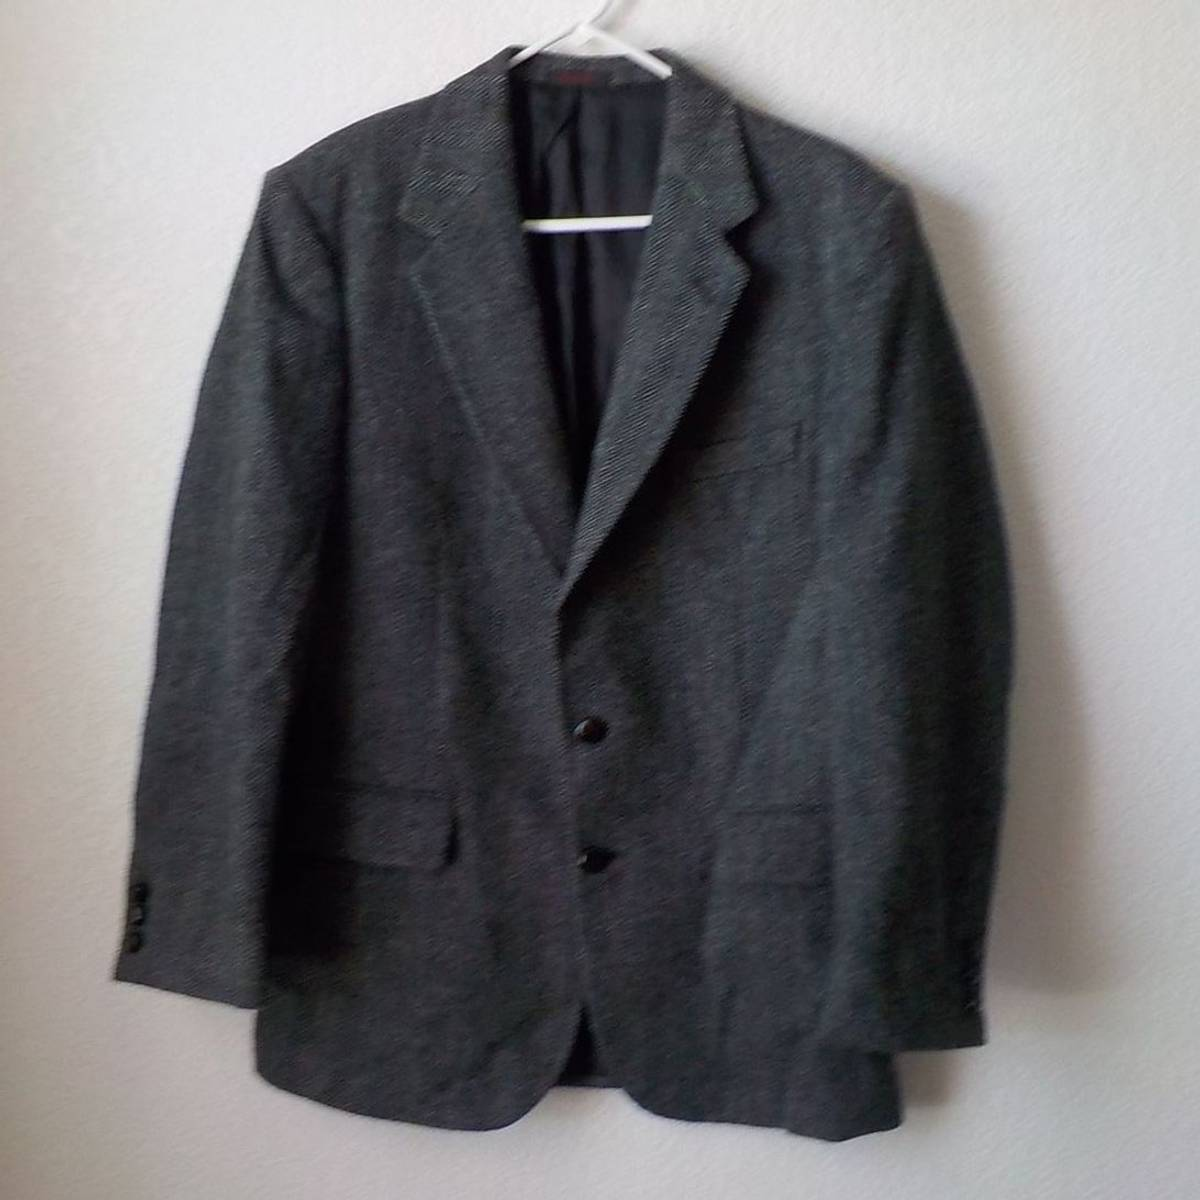 Austin Reed Austin Reeds Wool Blazer 40r Dark Gray Two Bottons Bulgaria Grailed